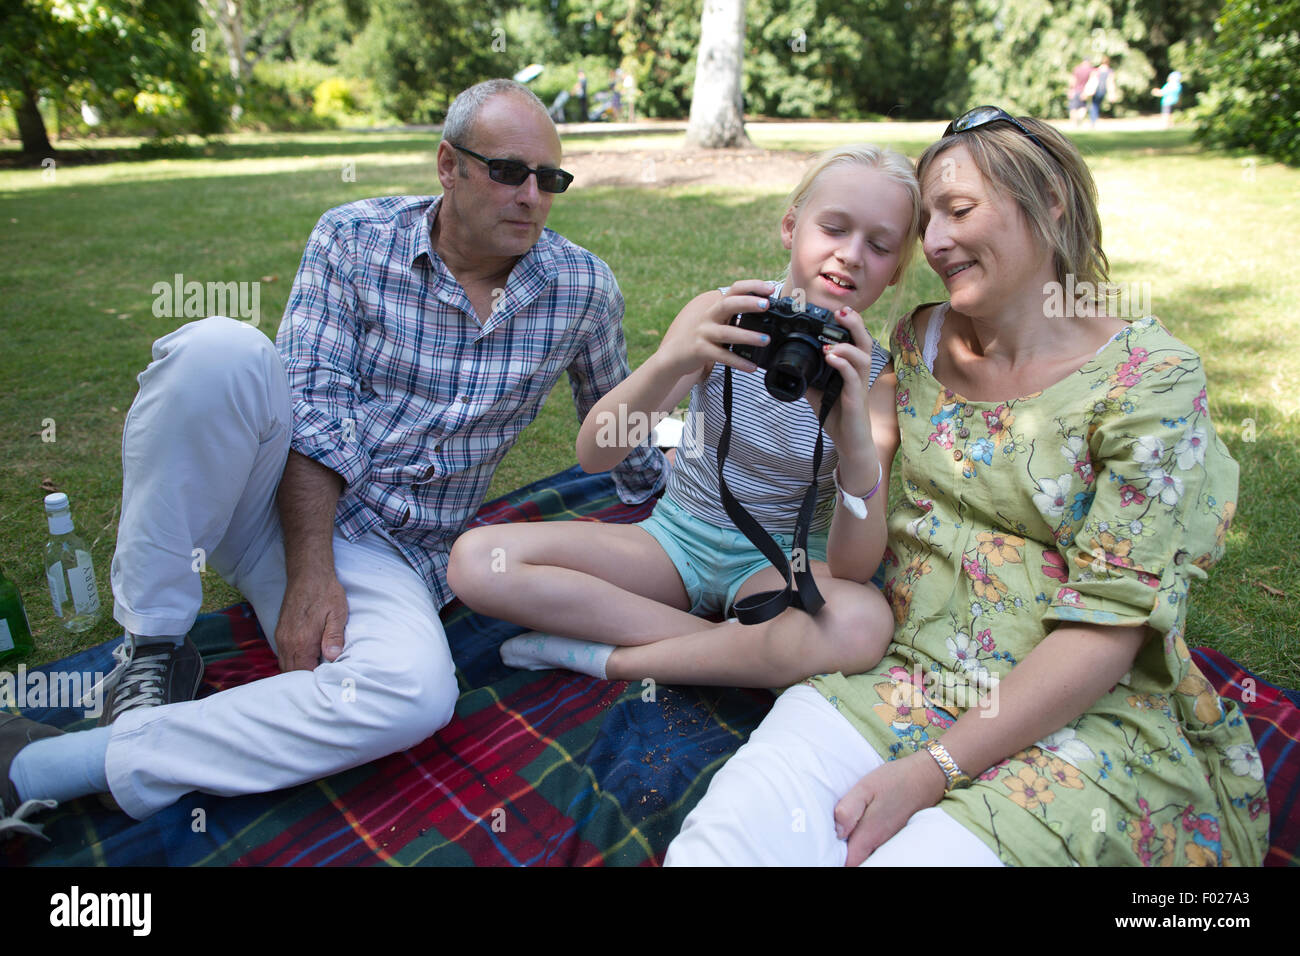 Family enjoying a relaxing day out at RHS Garden Wisley, Surrey, England, UK - Stock Image